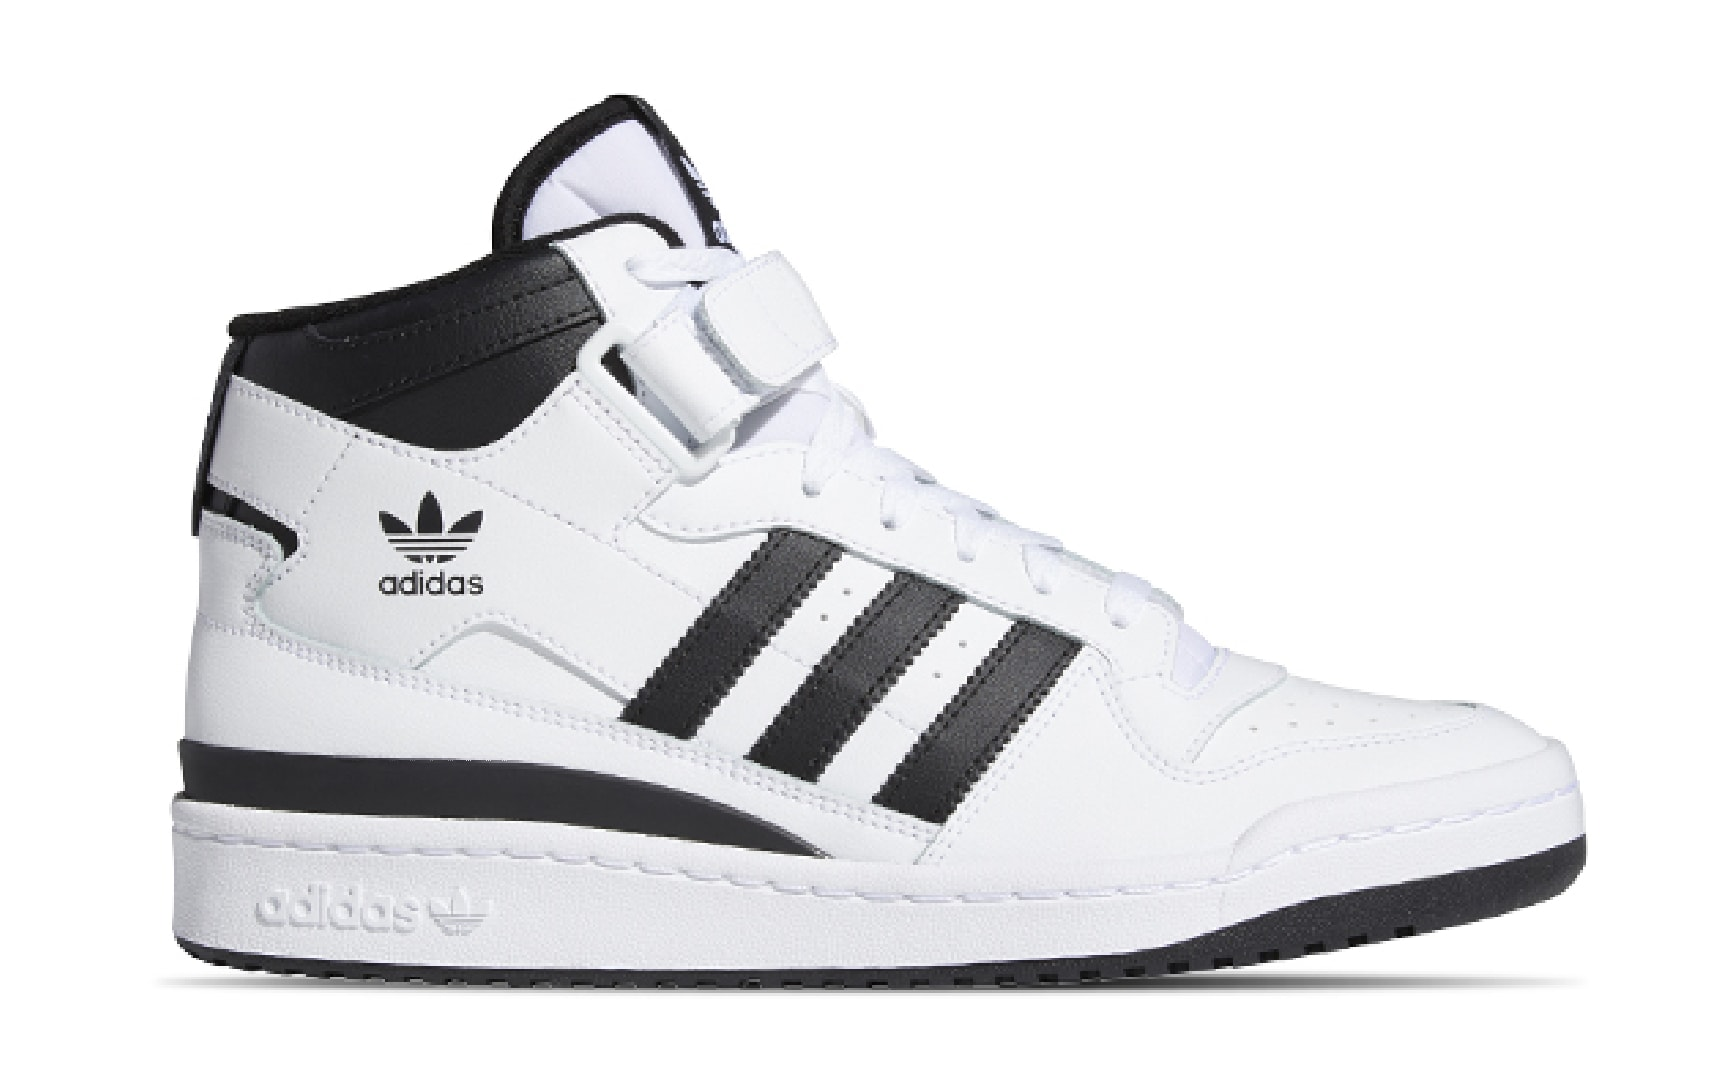 Adidas Forum Mid FY4939 Release Date